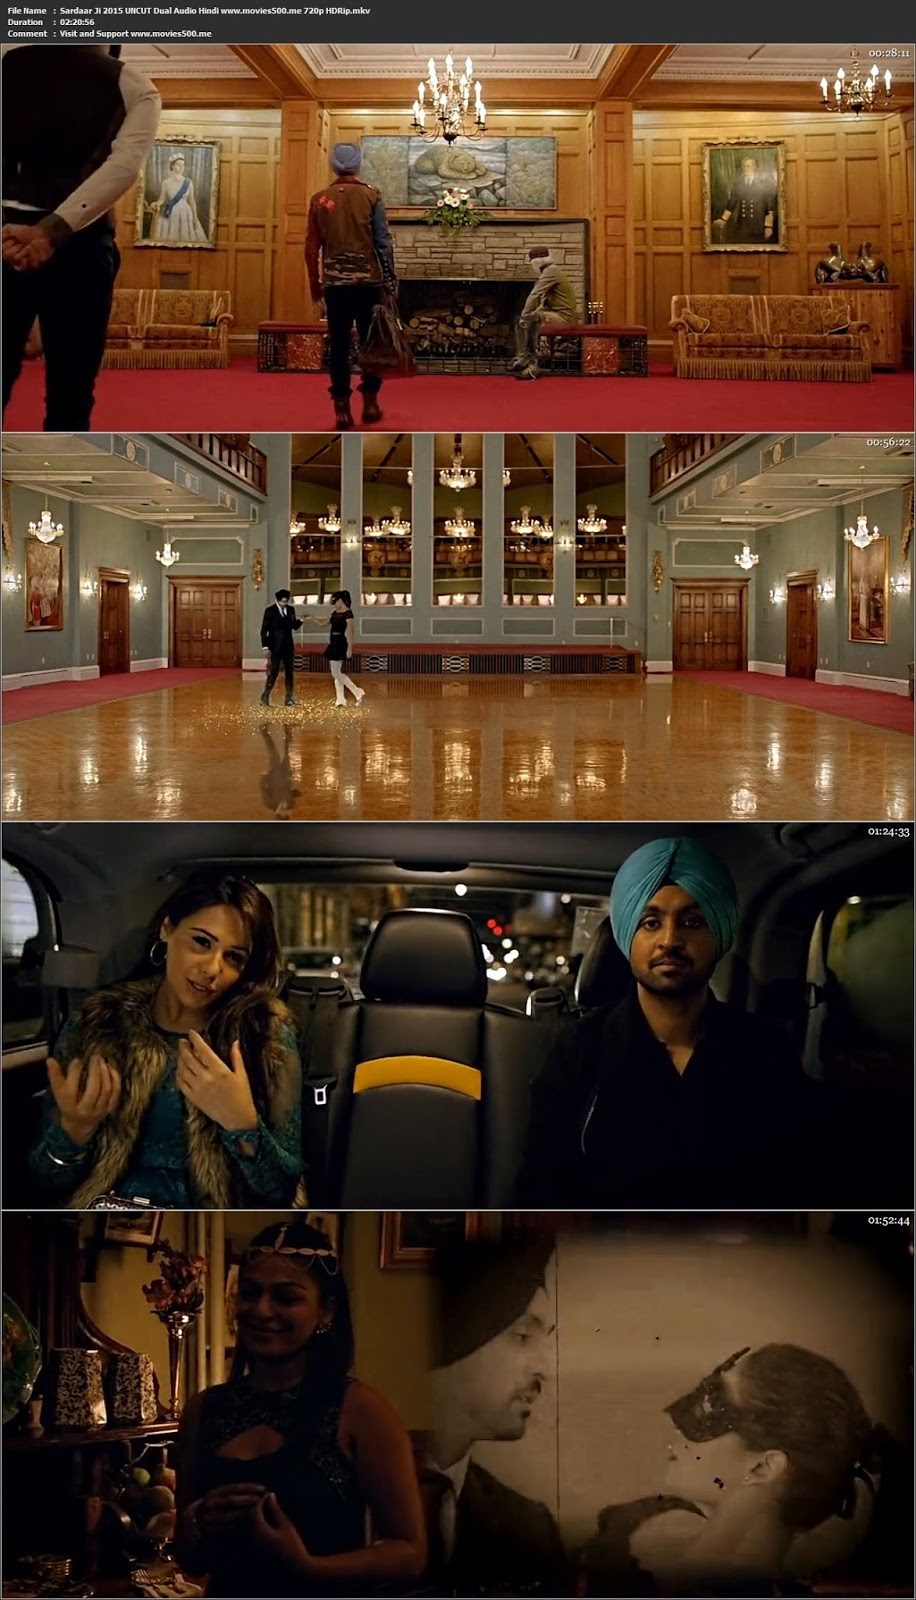 Sardaar Ji 2015 UNCUT Punjabi Movie HDRip 720p 1.4GB at gileadhomecare.com